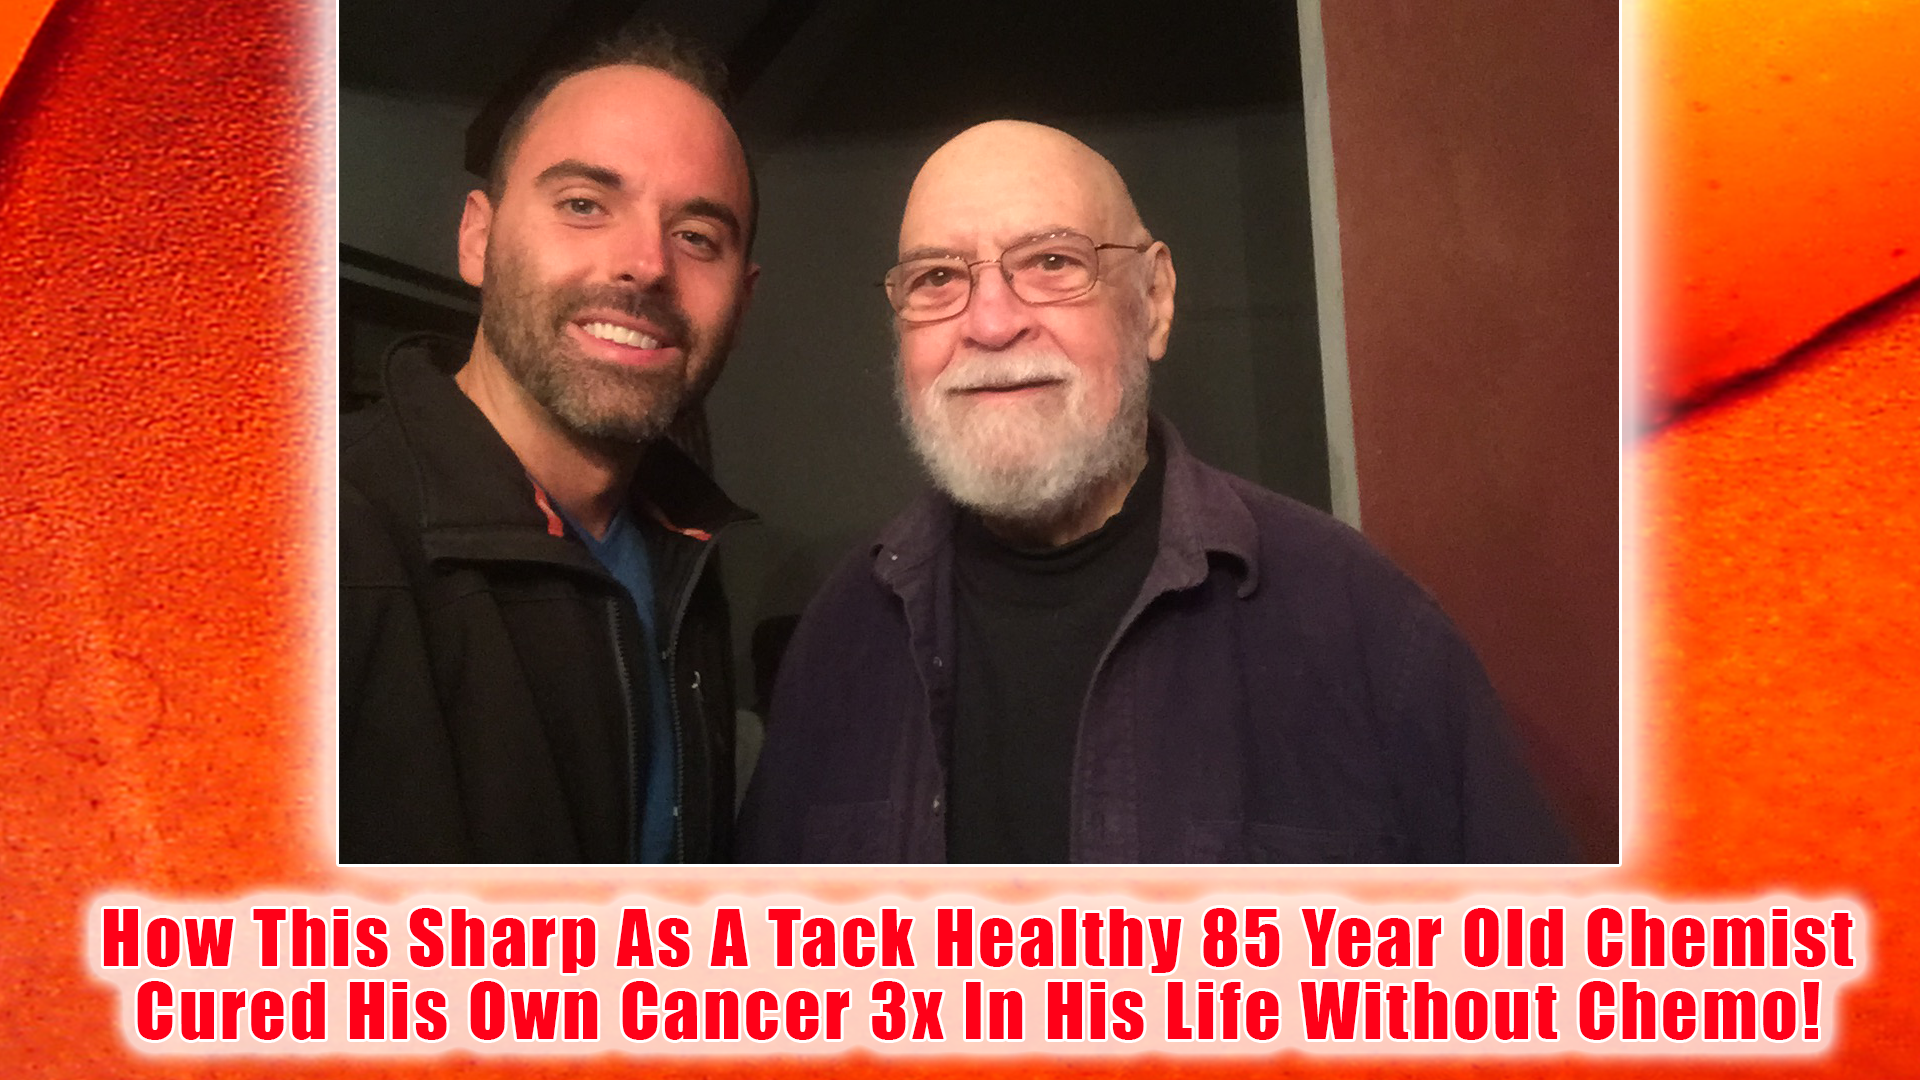 Artwork for How An 85 Year Old Chemist Cured His Cancer Three Times In His Life Without Chemotherapy. Special Interview Episode Part 1/2